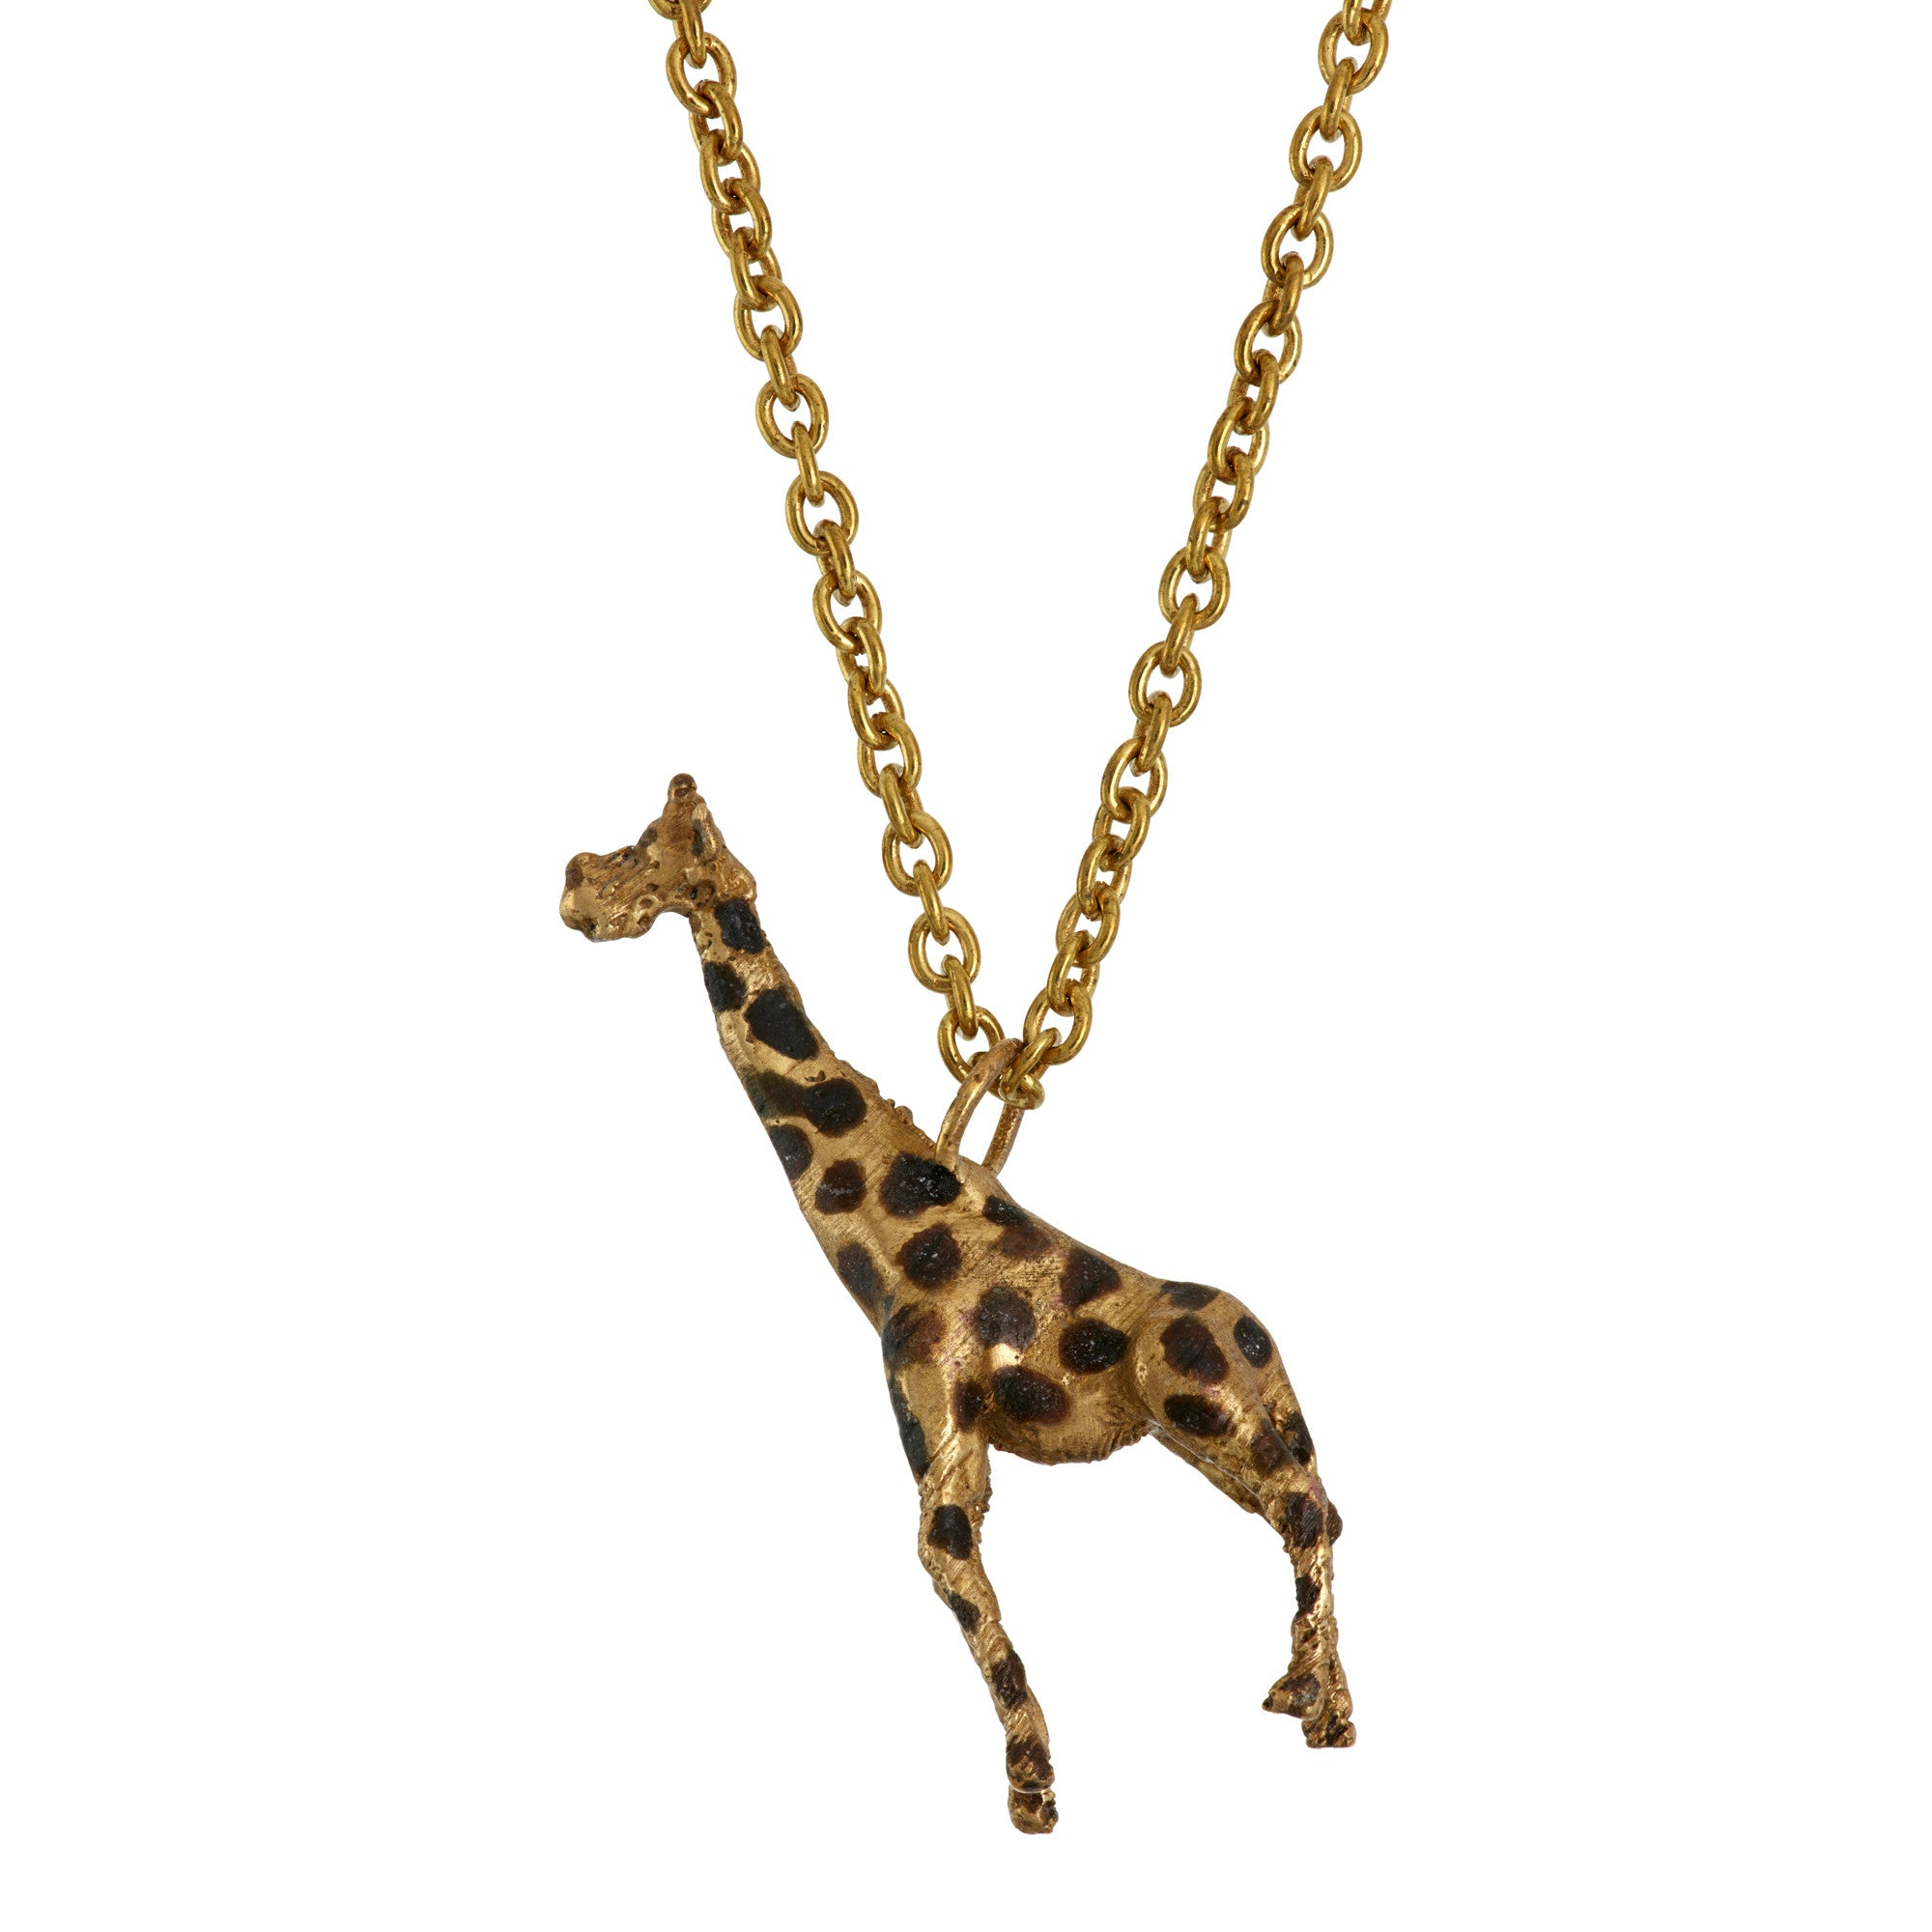 fashion suppliers store giraffe chain aliexpress necklace pendant antique reliable simple tone product buy silver long from wysiwyg color com